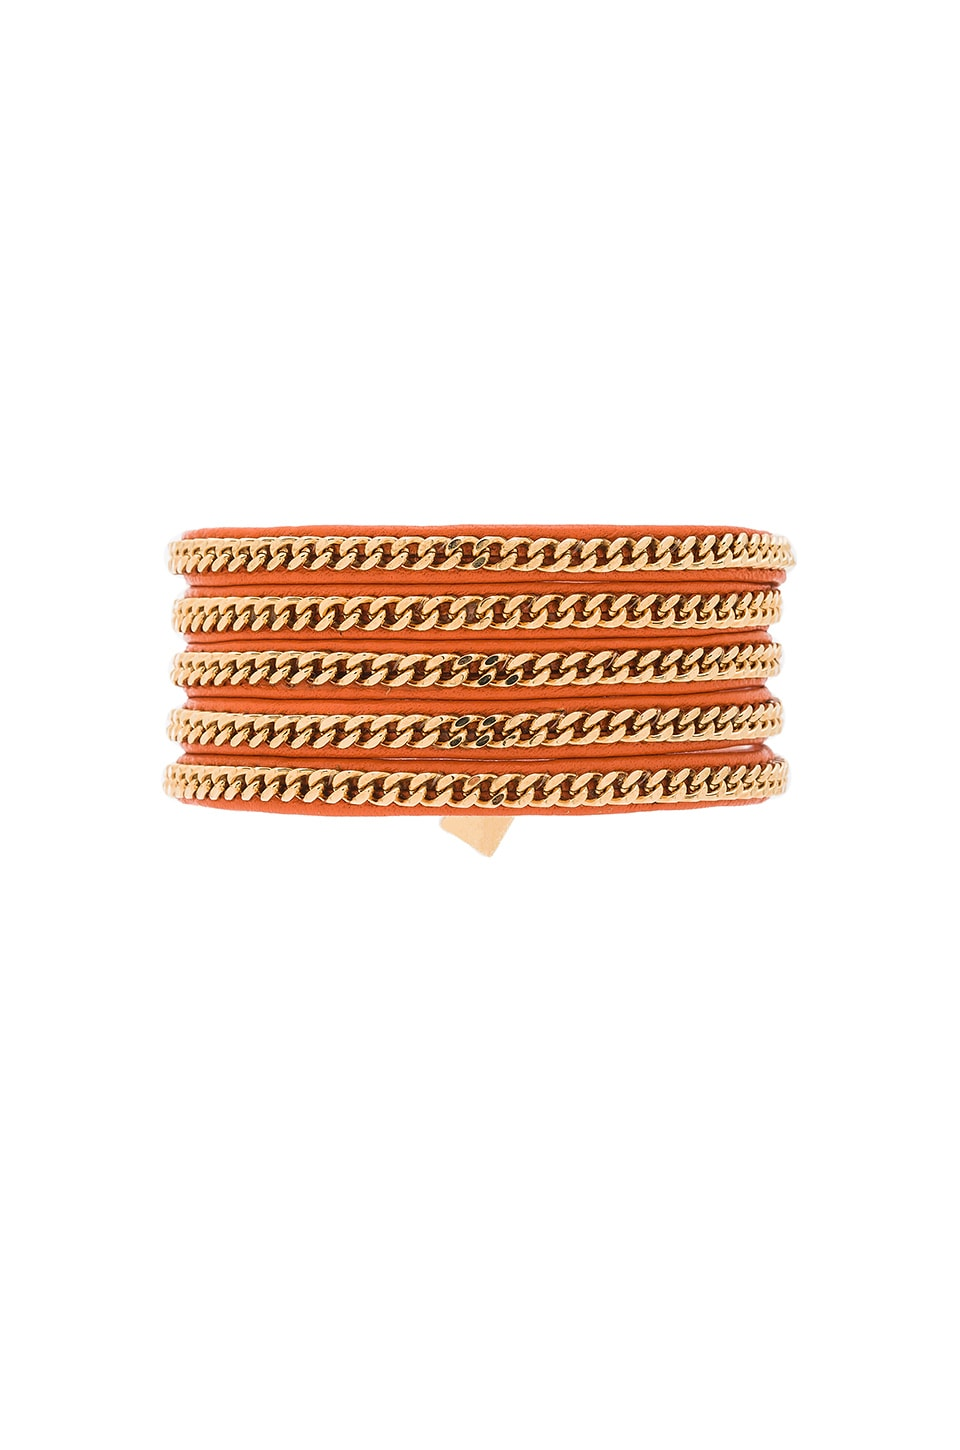 Vita Fede Capri Wrap Bracelet in Orange Leather & Gold